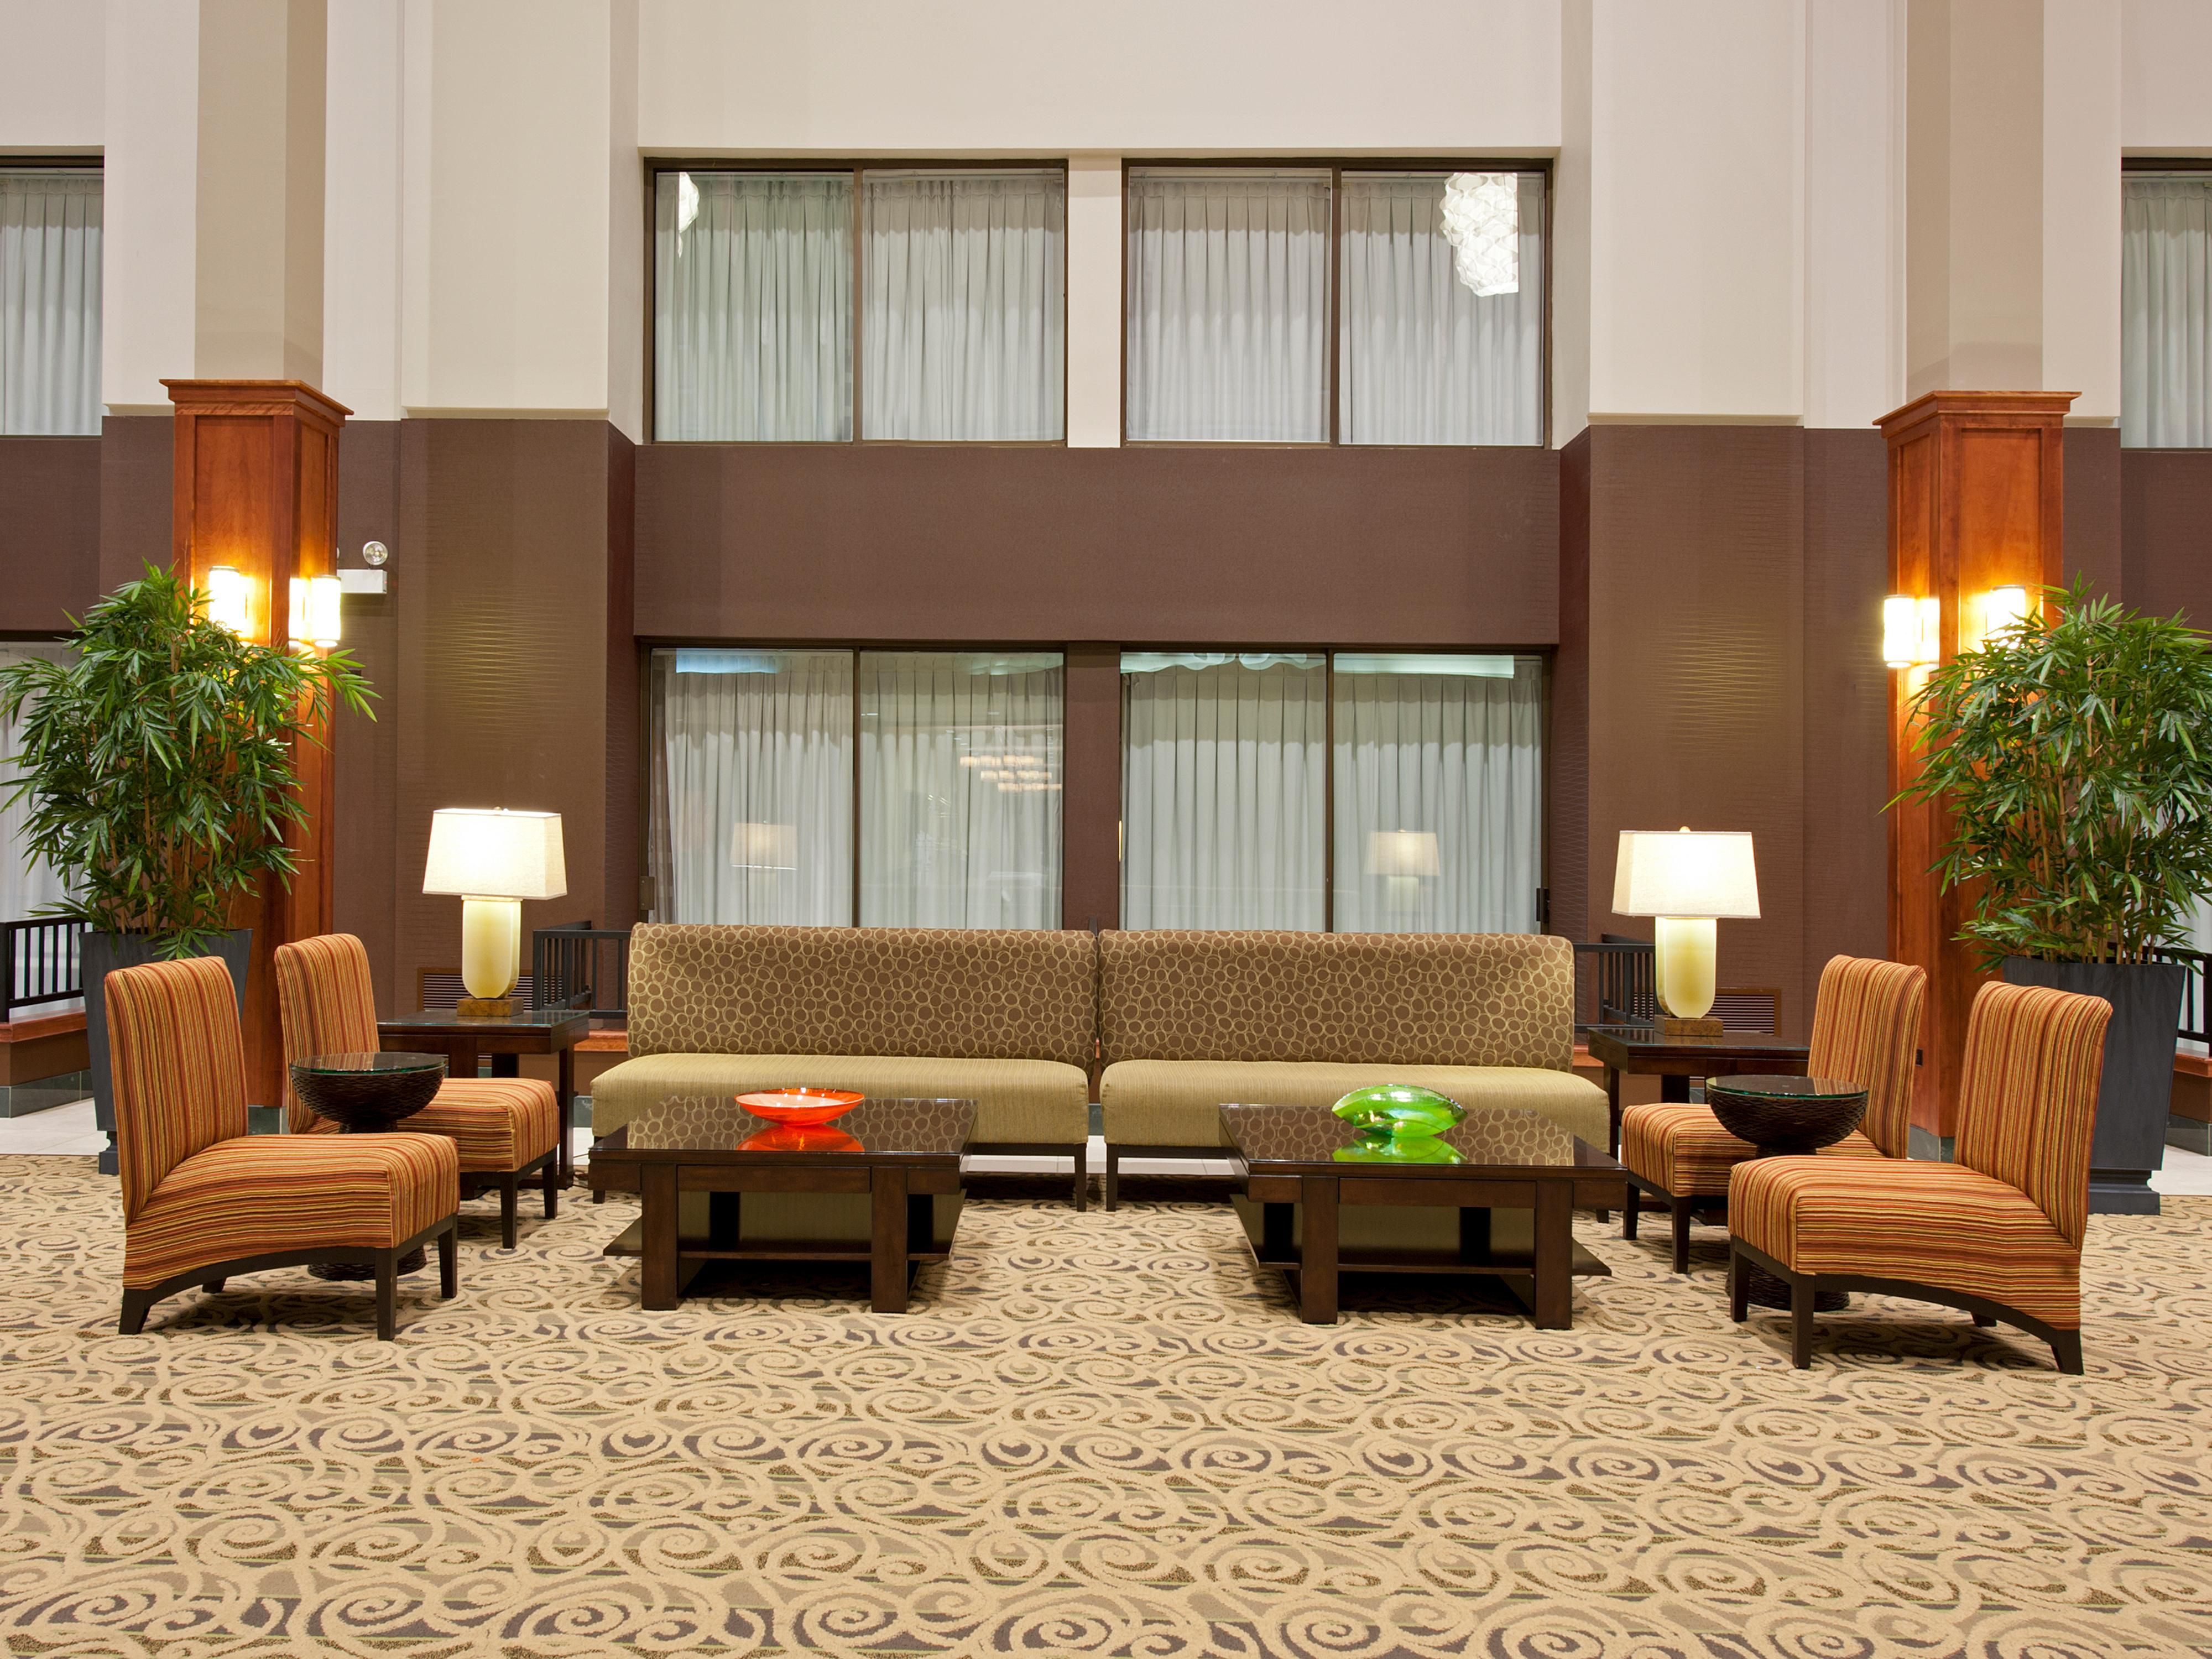 Holiday Inn Itasca Lobby Seating - IHG Hotel in Chicago Suburbs